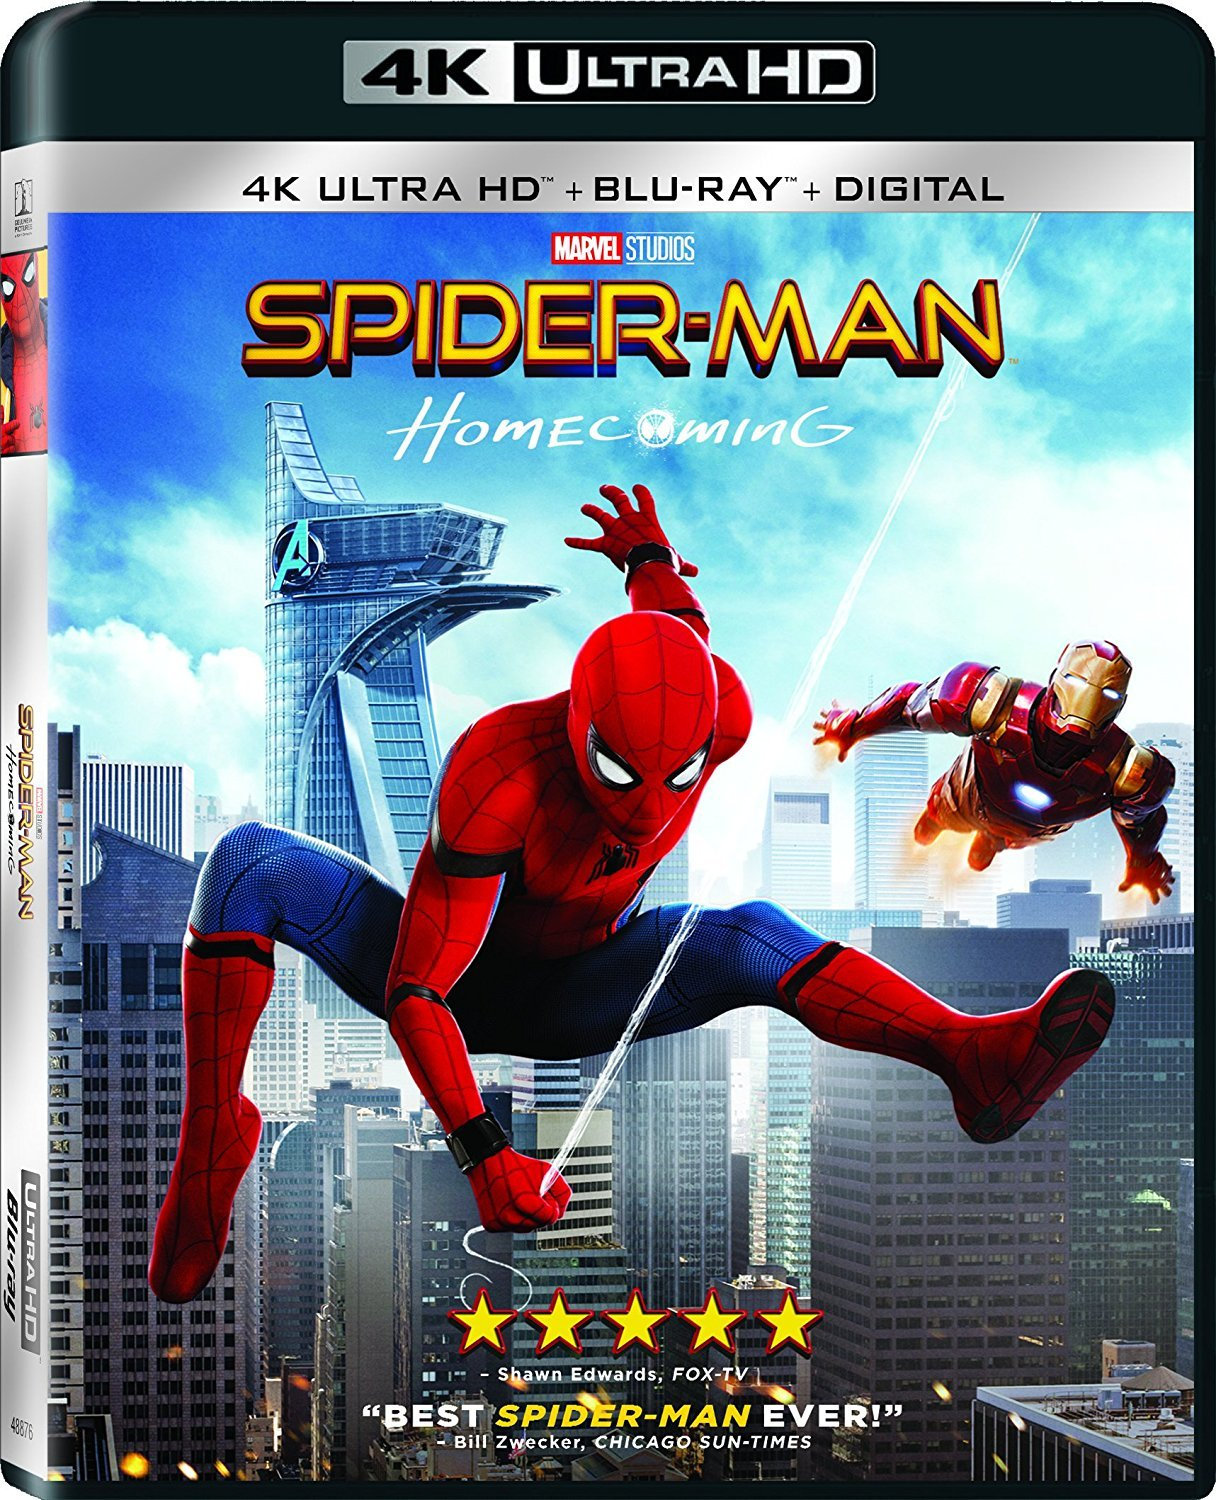 Spider-Man: Homecoming (2017) 4K Ultra HD Blu-ray